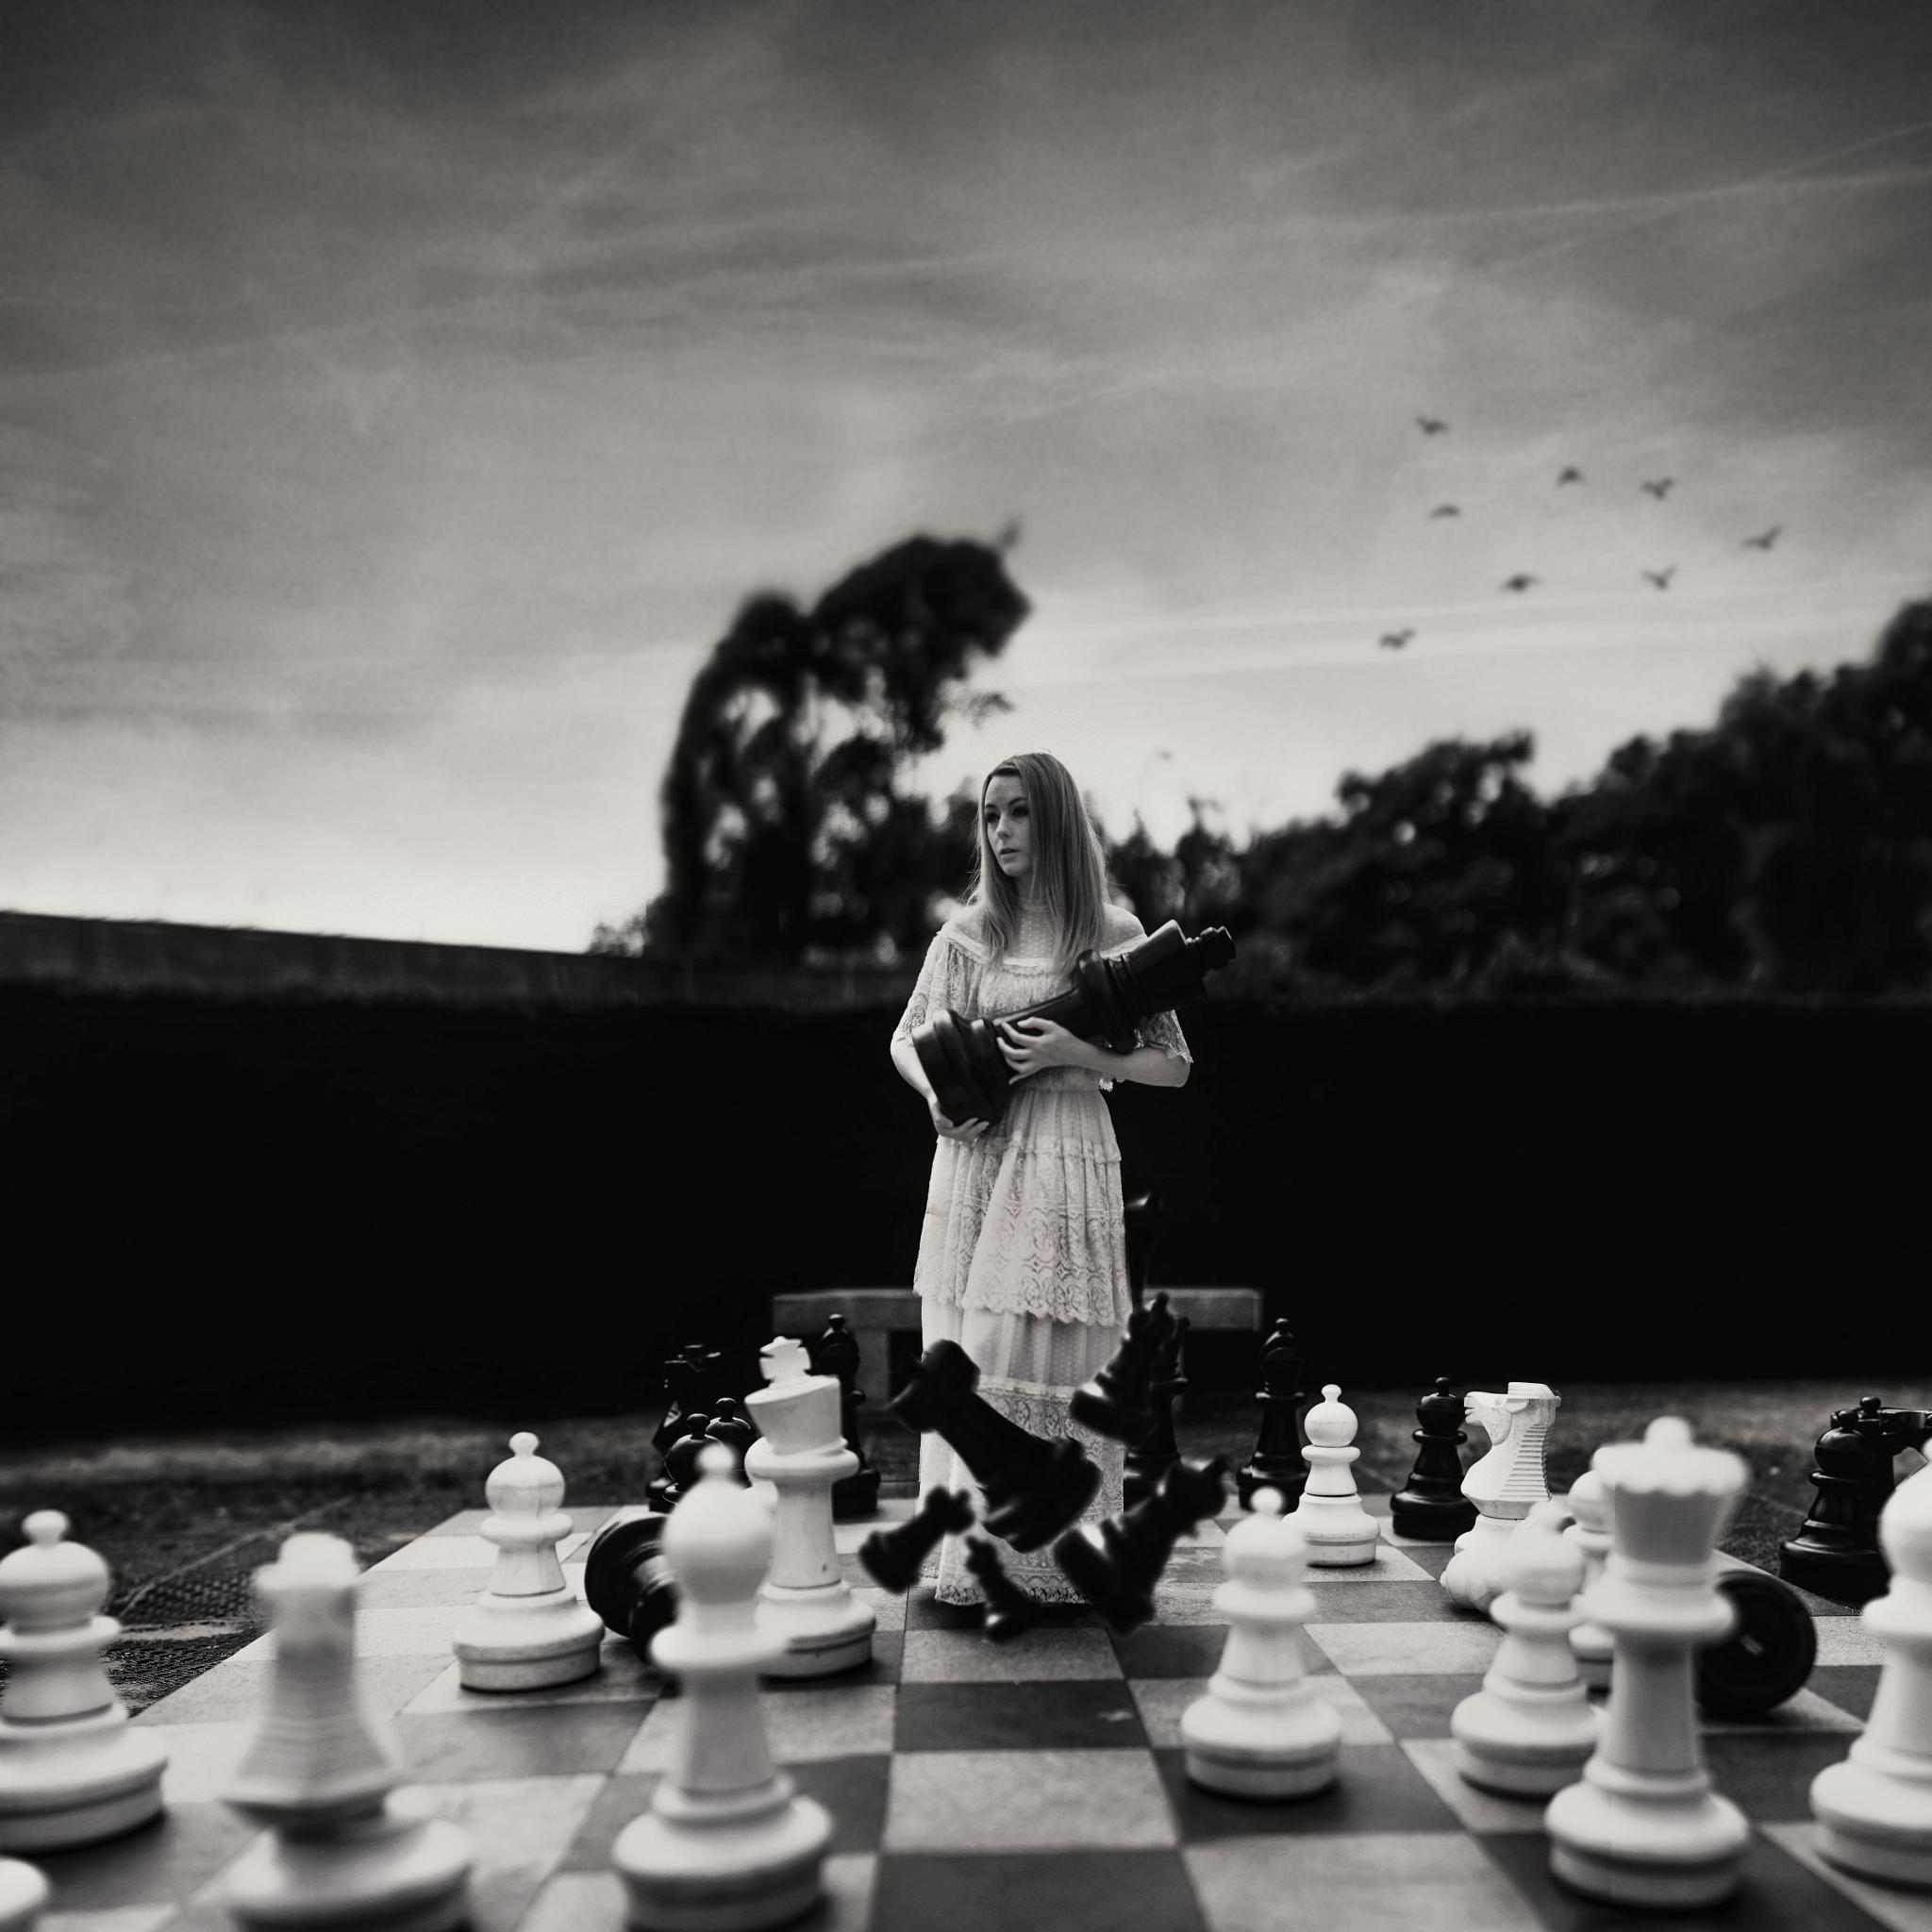 Don't Want To Play The Game by Joel Robison